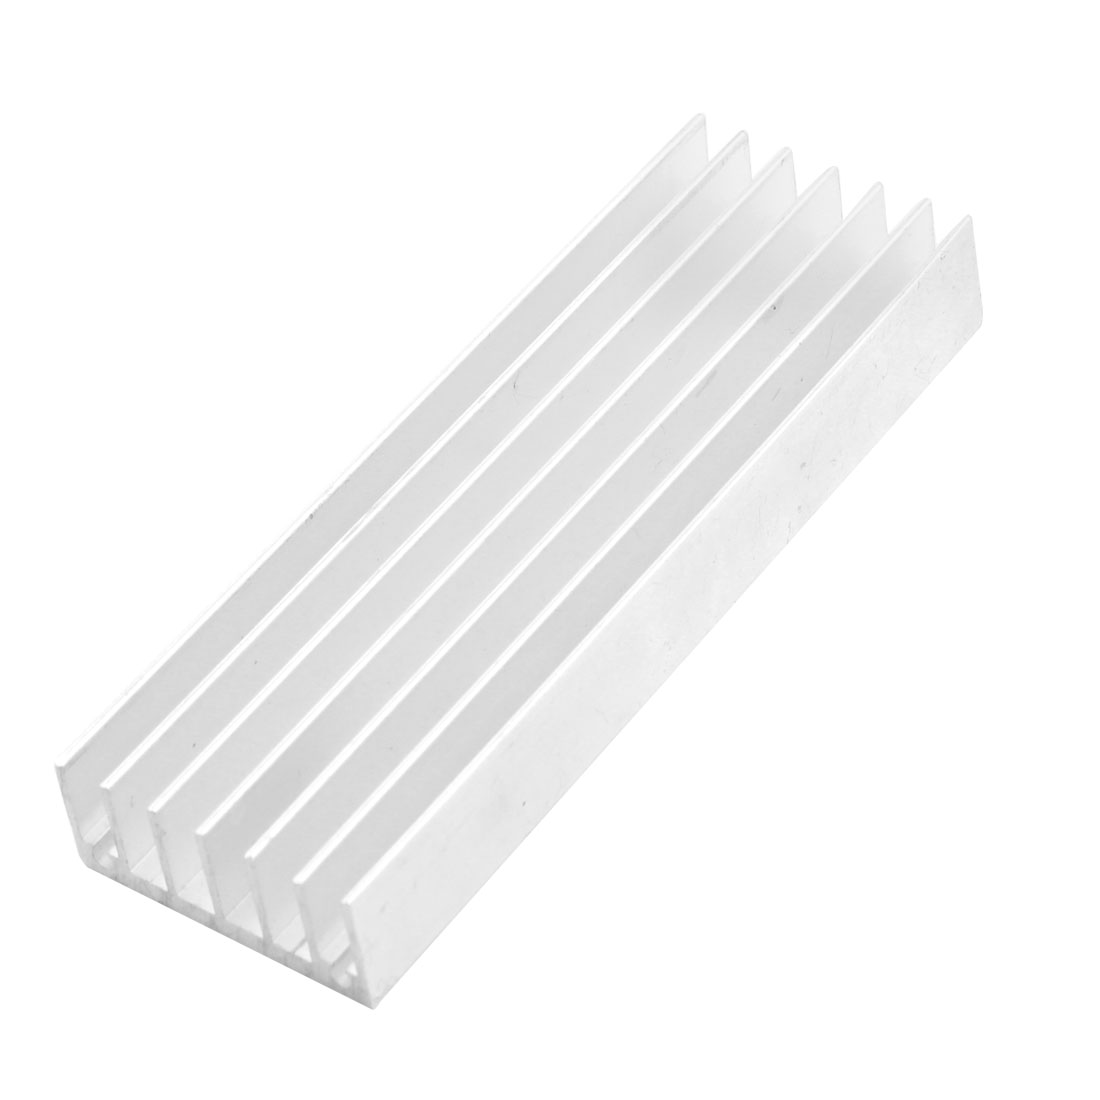 Aluminium Profile Rectangle Heatsink Heat Dissipation Cooling Fin 106mm x 35mm x 15mm